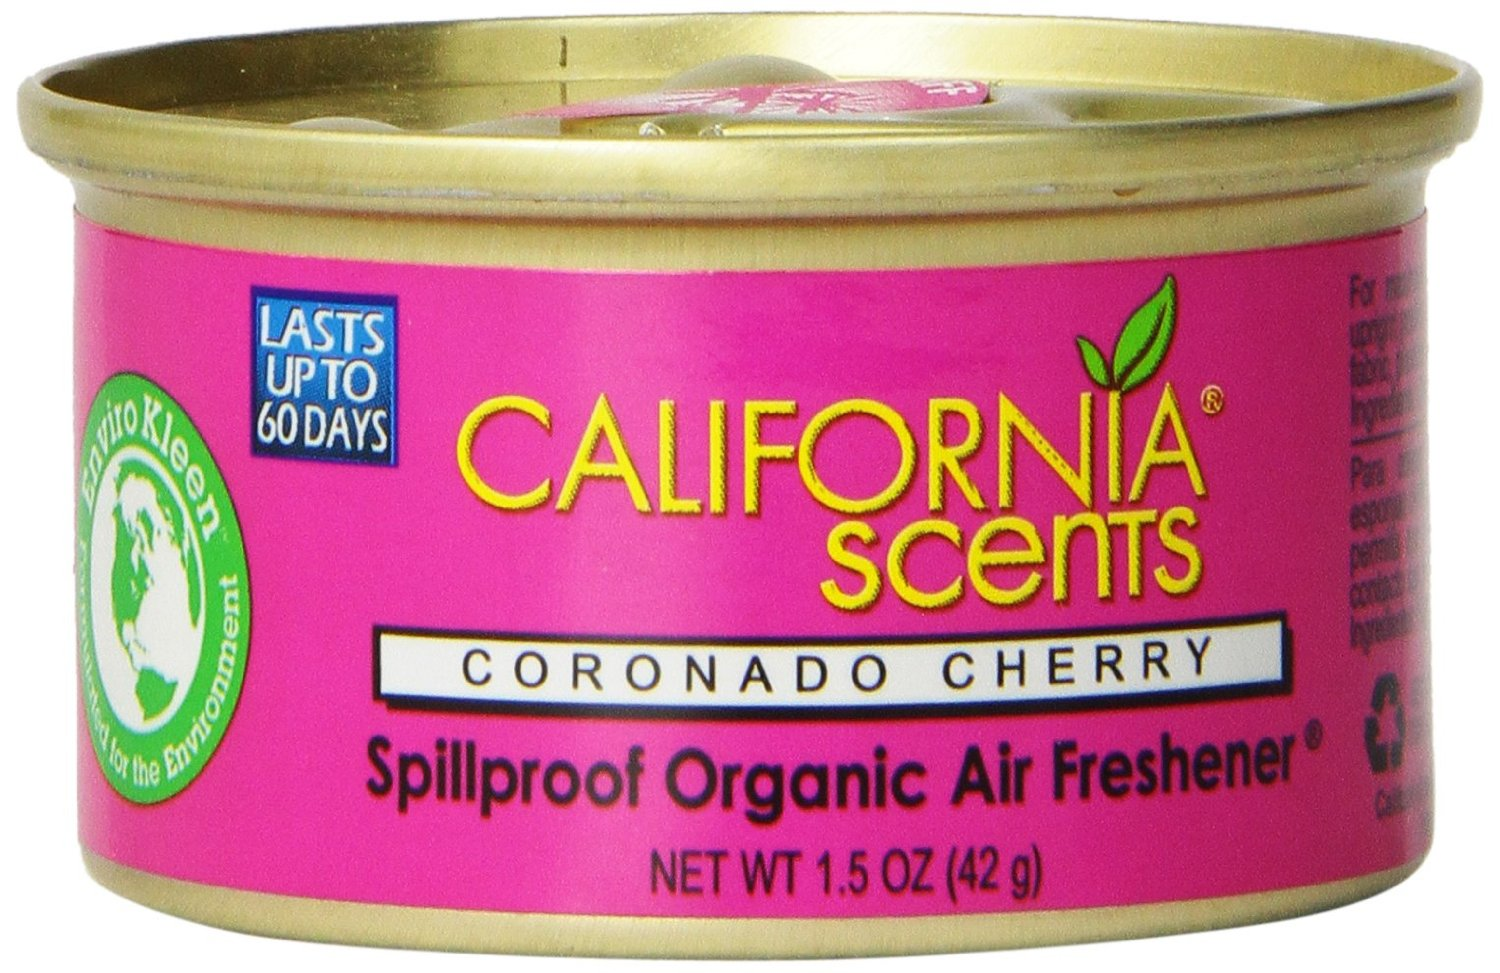 California Scents Spillproof Organic